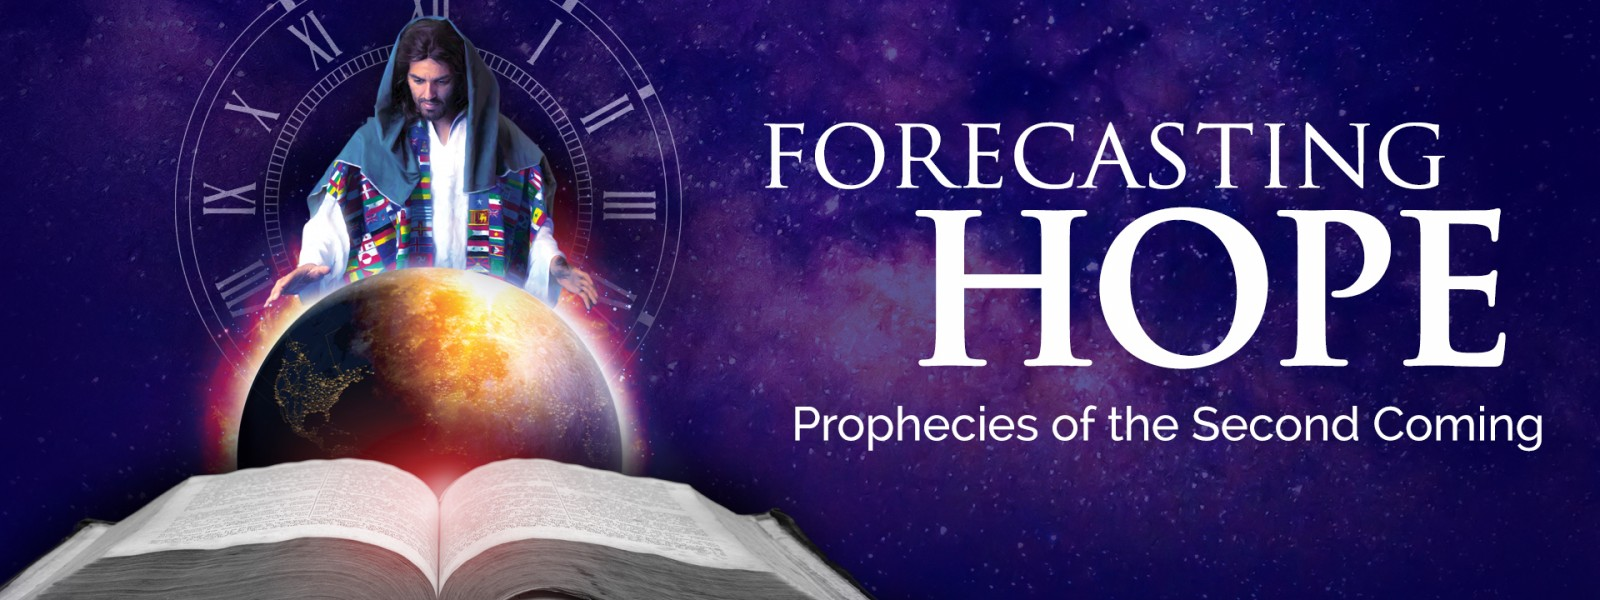 Forecasting Hope Header